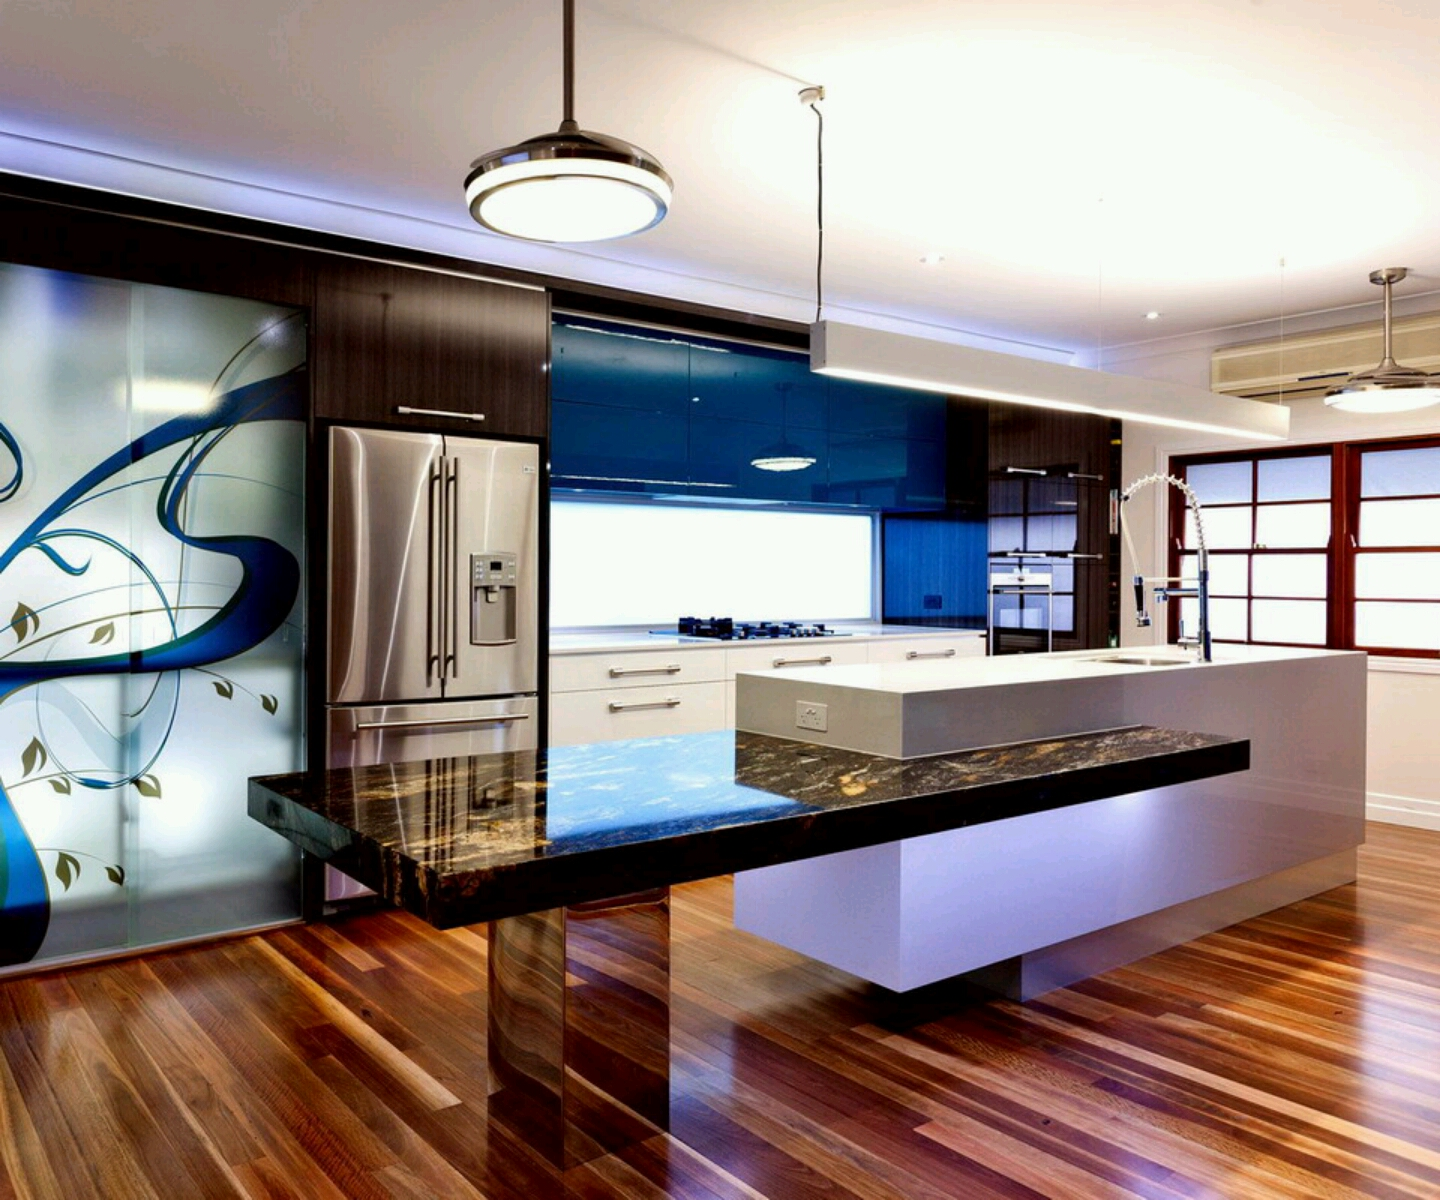 New home designs latest ultra modern kitchen designs ideas for Home decor ideas for kitchen